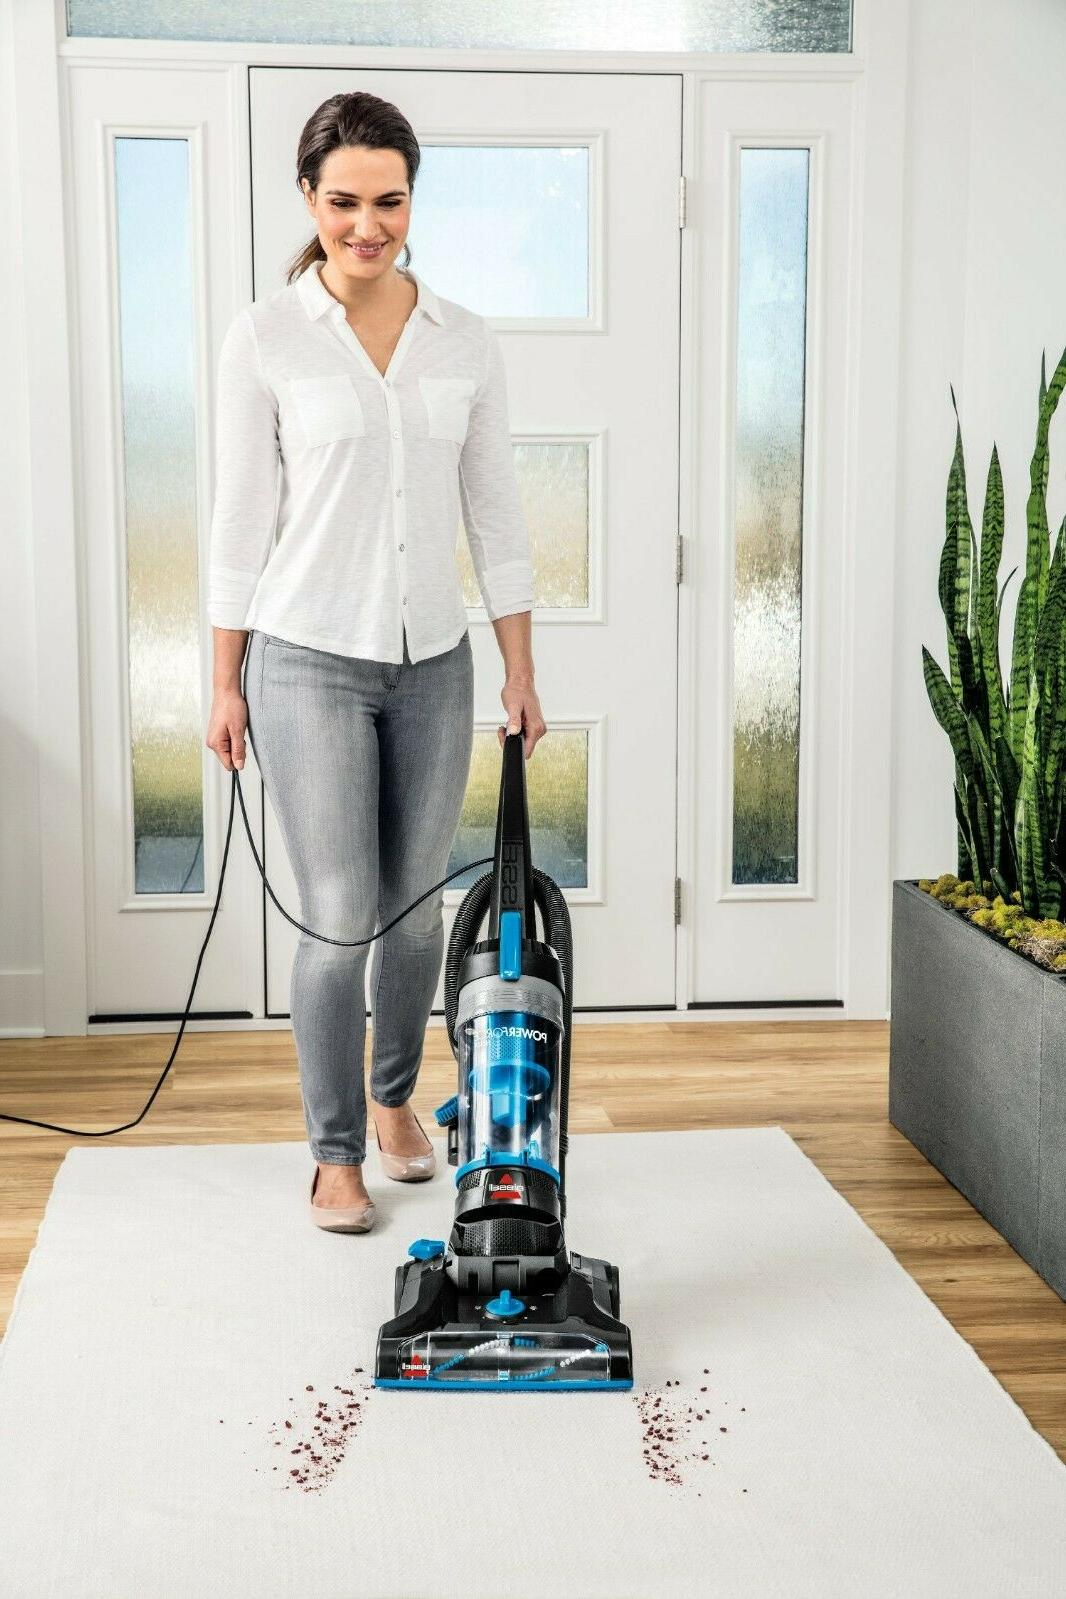 BISSELL Helix Blue Vacuum